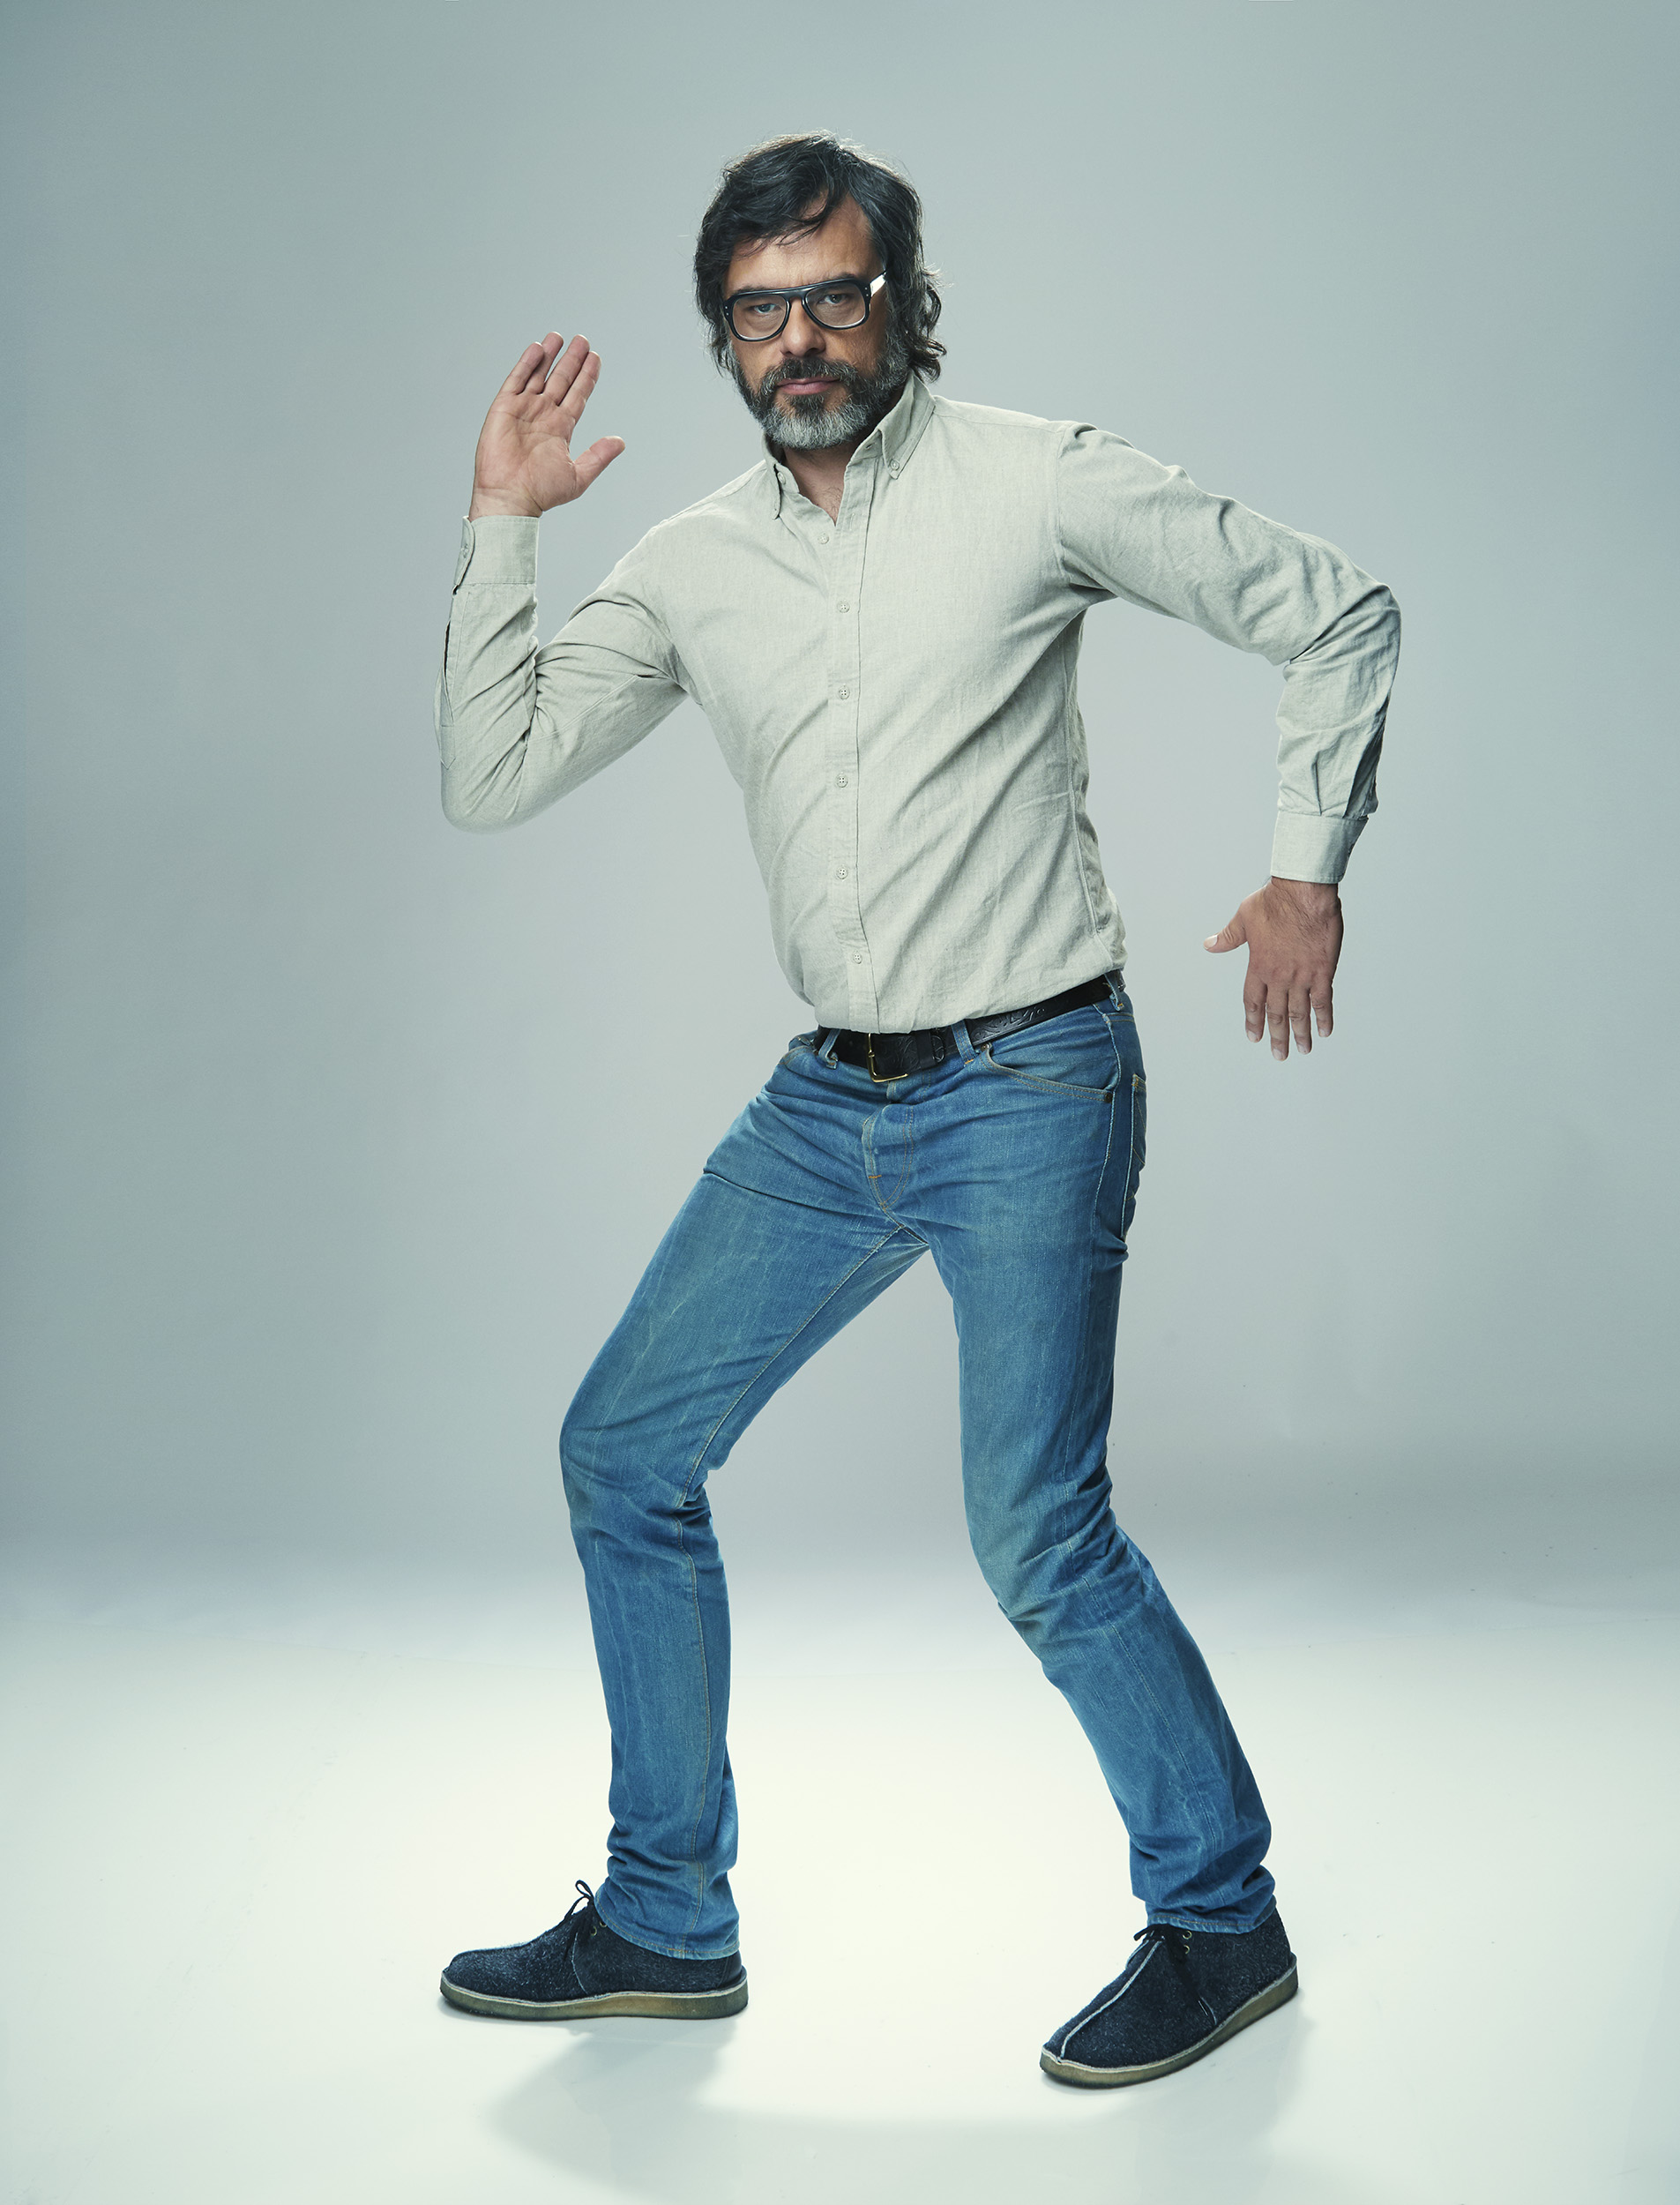 Jemaine-Clement-by-Robert-Ascroft-02